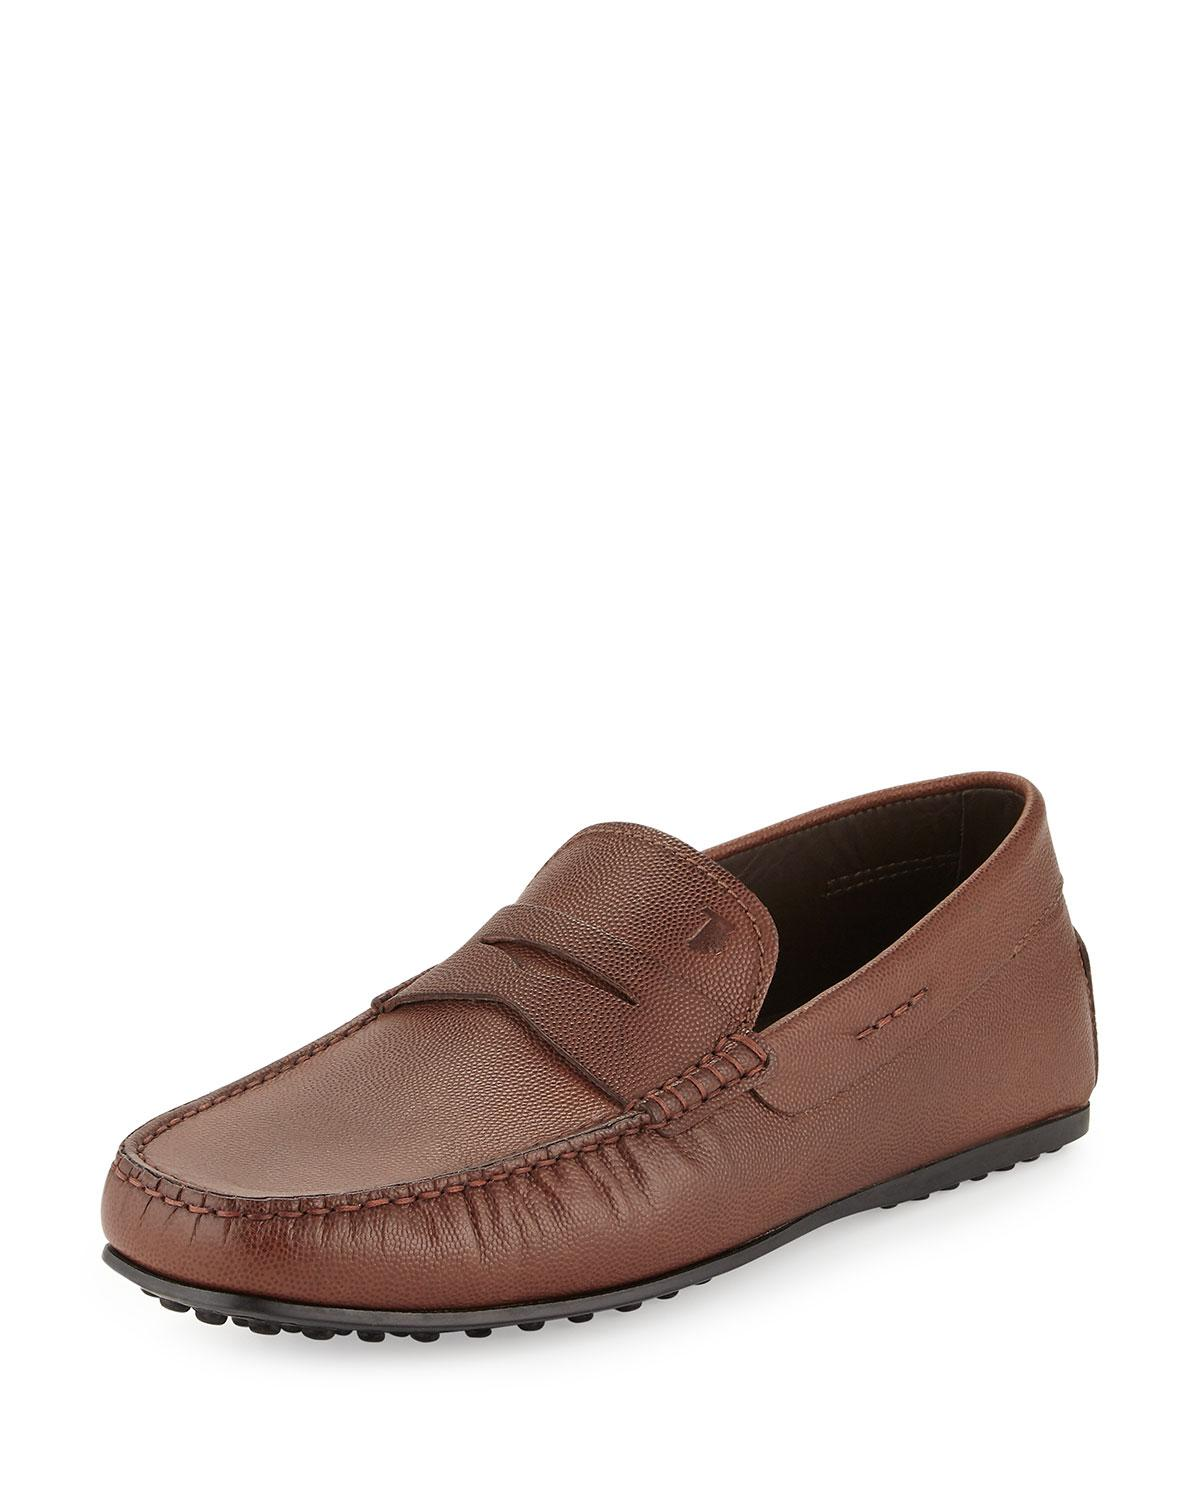 Tod's City Textured-leather Driver, Light Brown In Brown Light